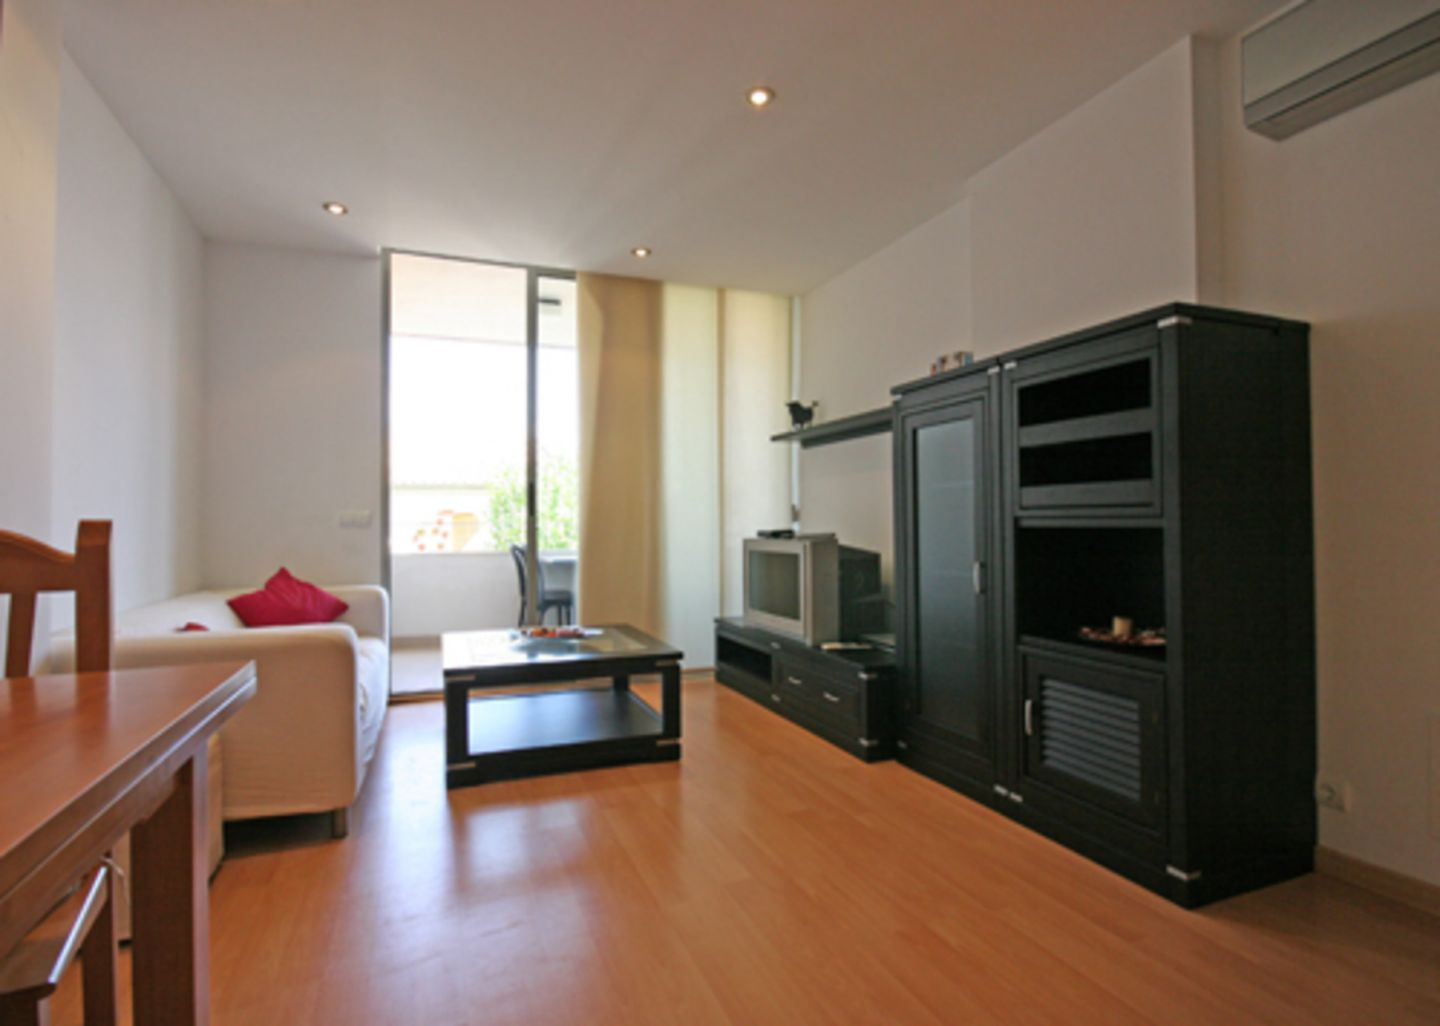 2 Bed Apartment for sale in PUERTO POLLENSA 0